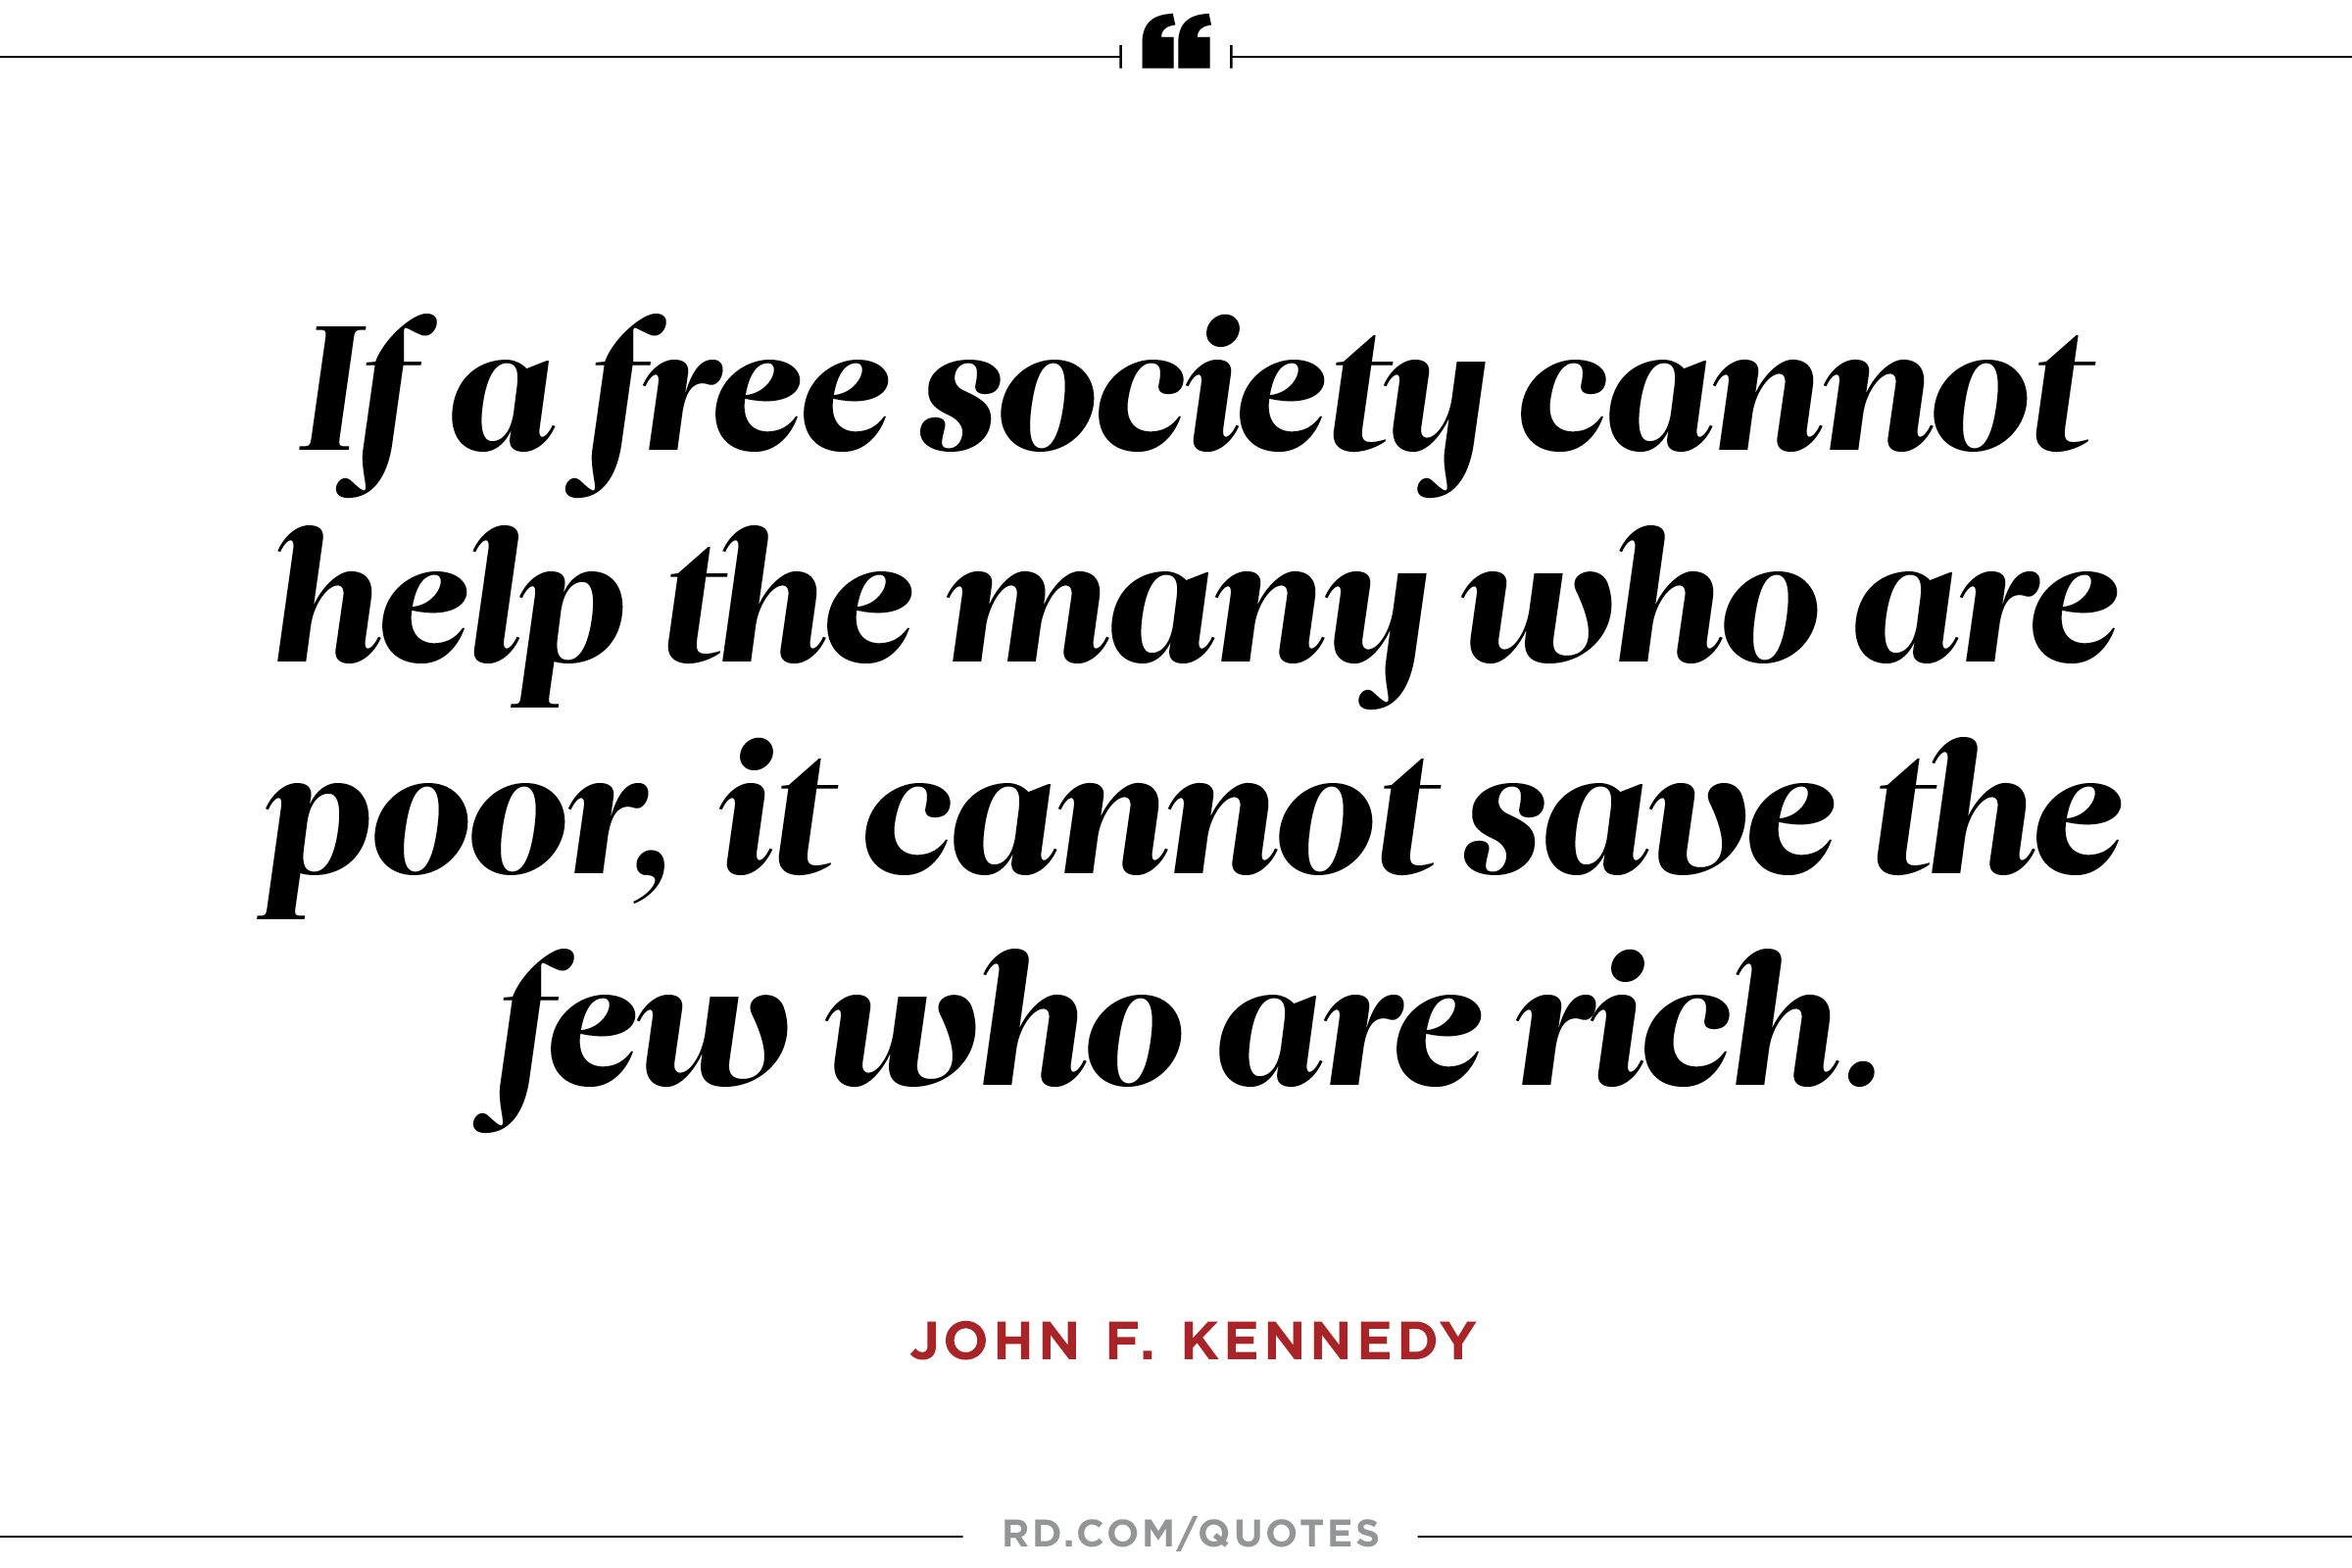 JFK on poverty